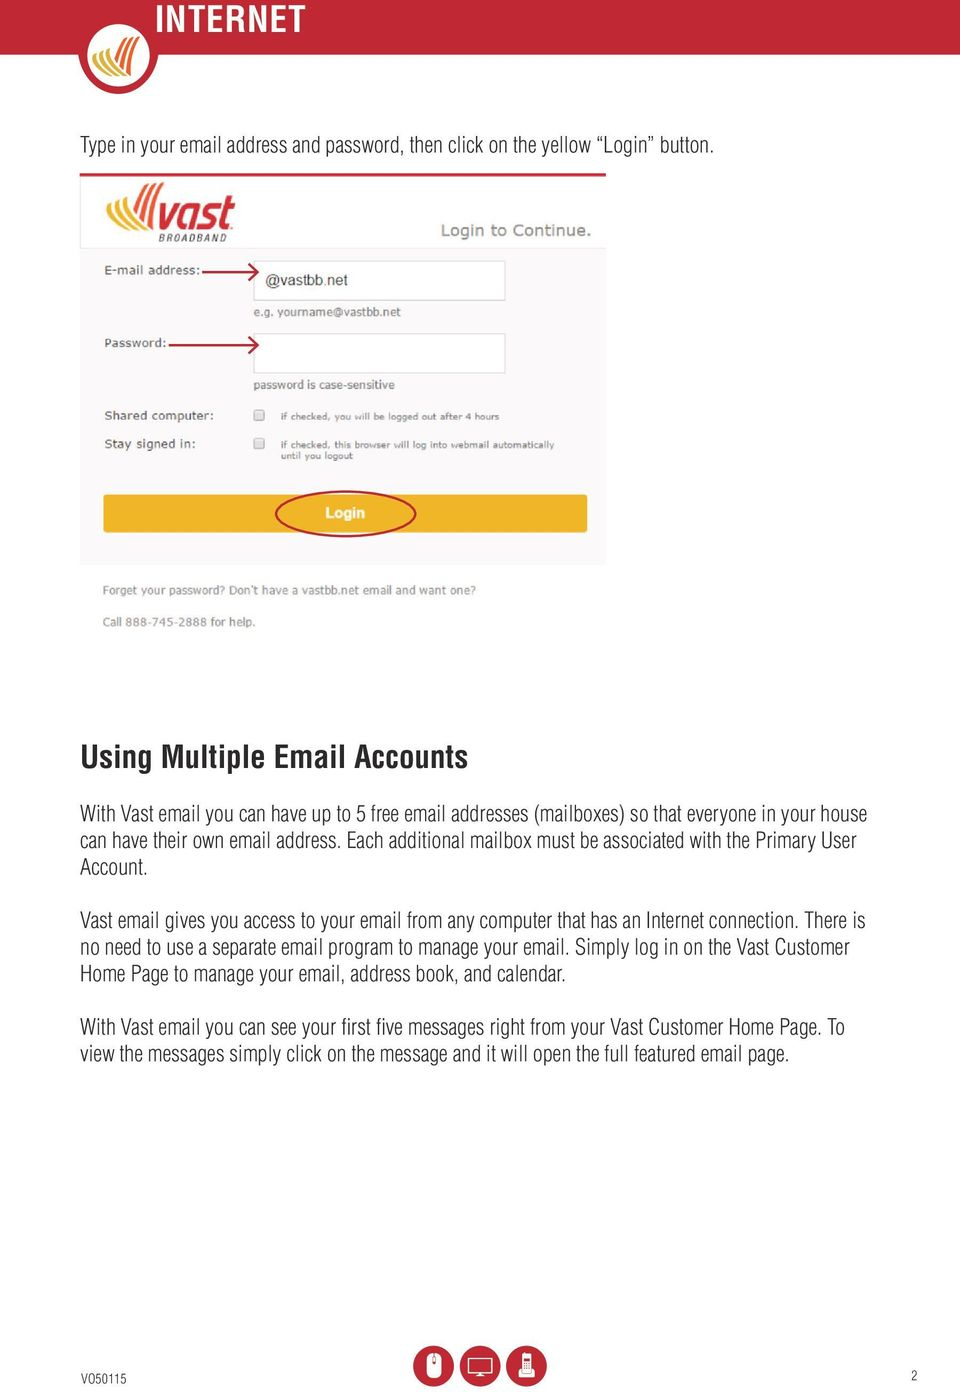 Each additional mailbox must be associated with the Primary User Account. Vast email gives you access to your email from any computer that has an Internet connection.